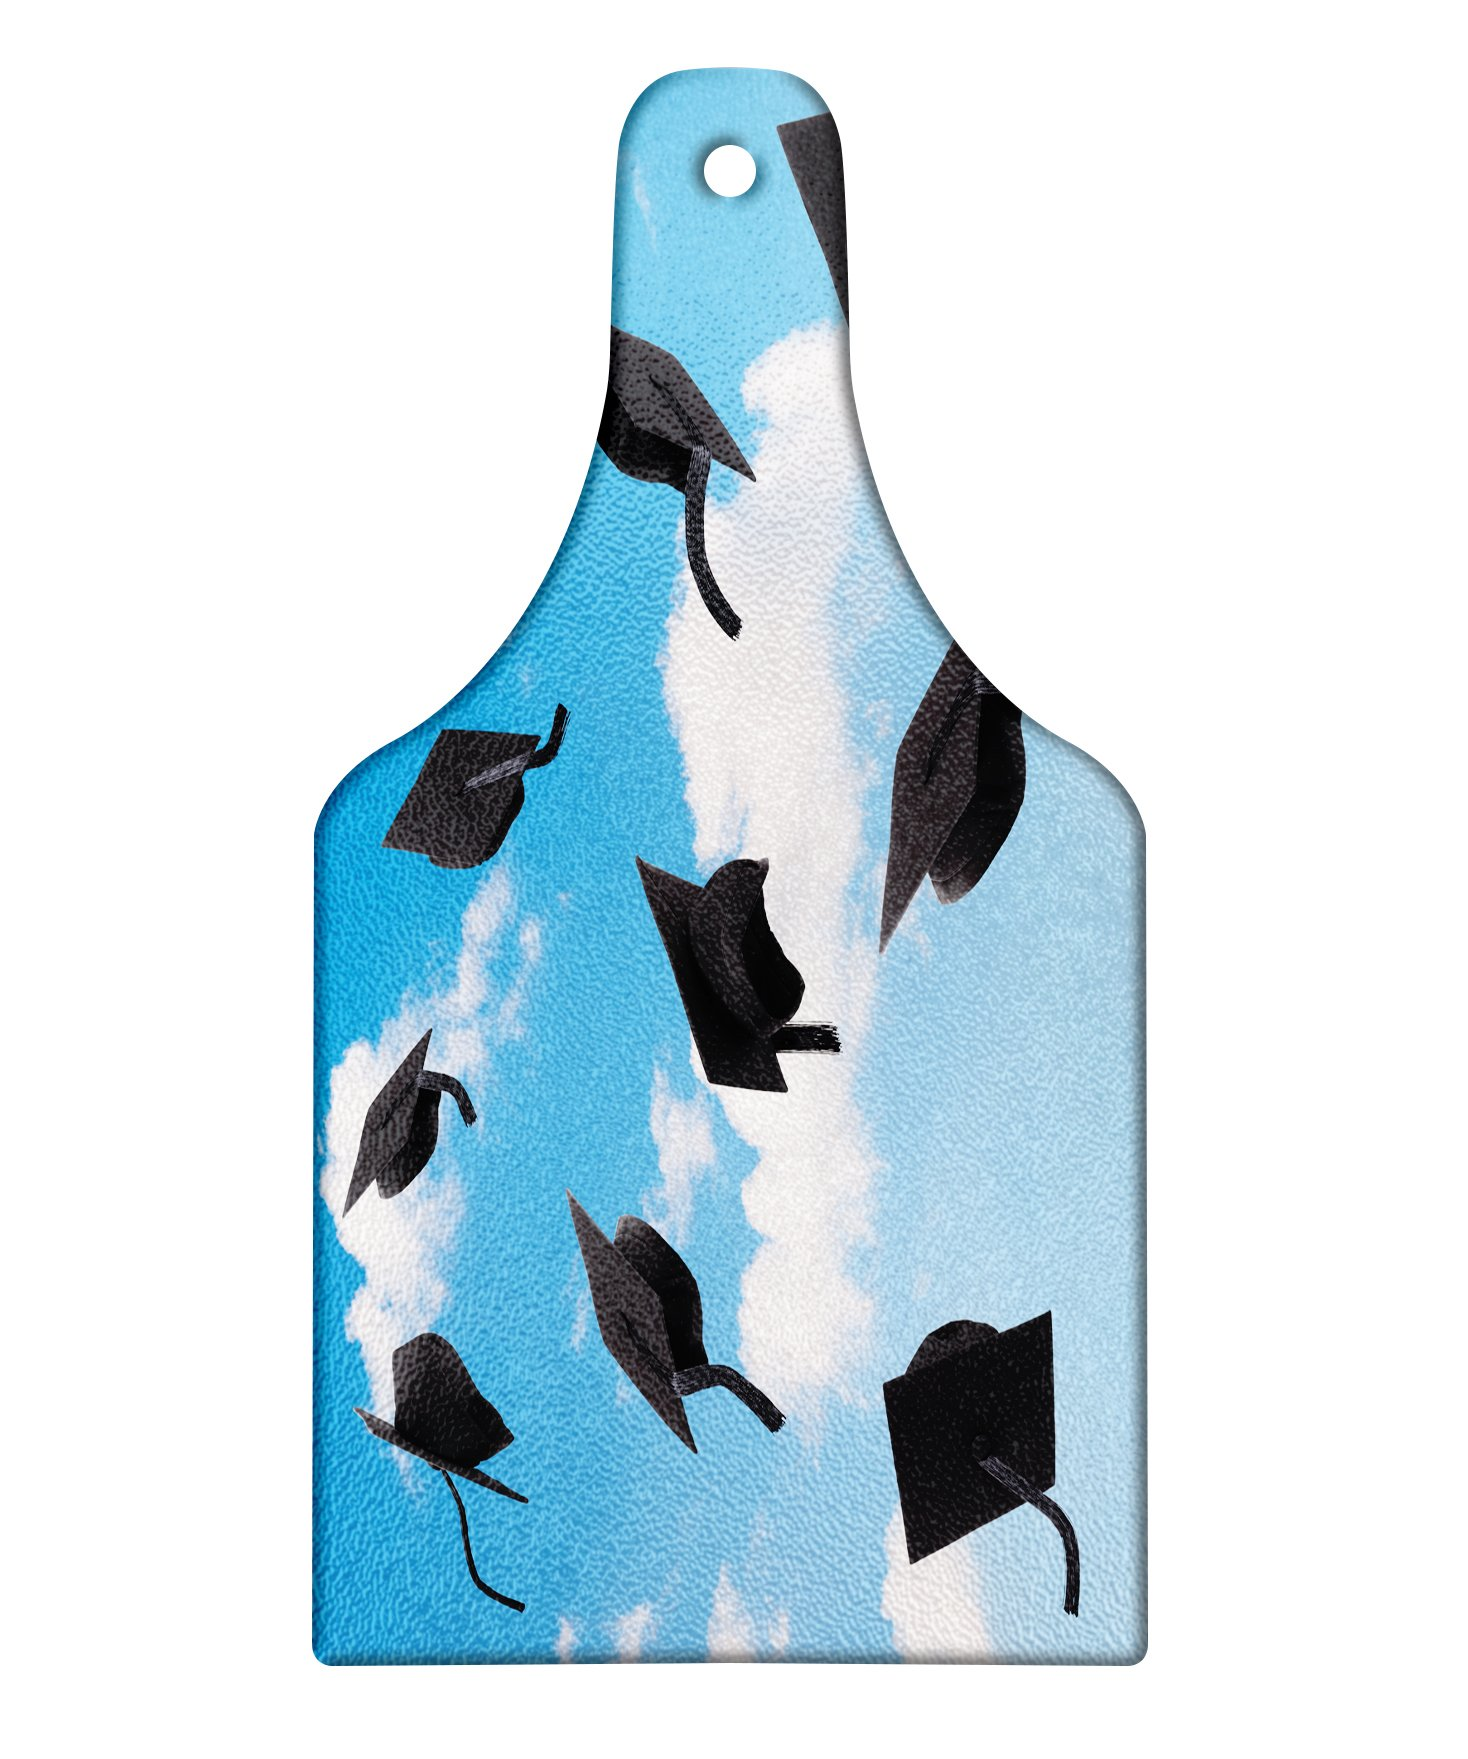 Lunarable Graduation Cutting Board, Caps Thrown into Sky Last of The School Highschool College Ceremony Picture, Decorative Tempered Glass Cutting and Serving Board, Wine Bottle Shape, Blue Black by Lunarable (Image #1)